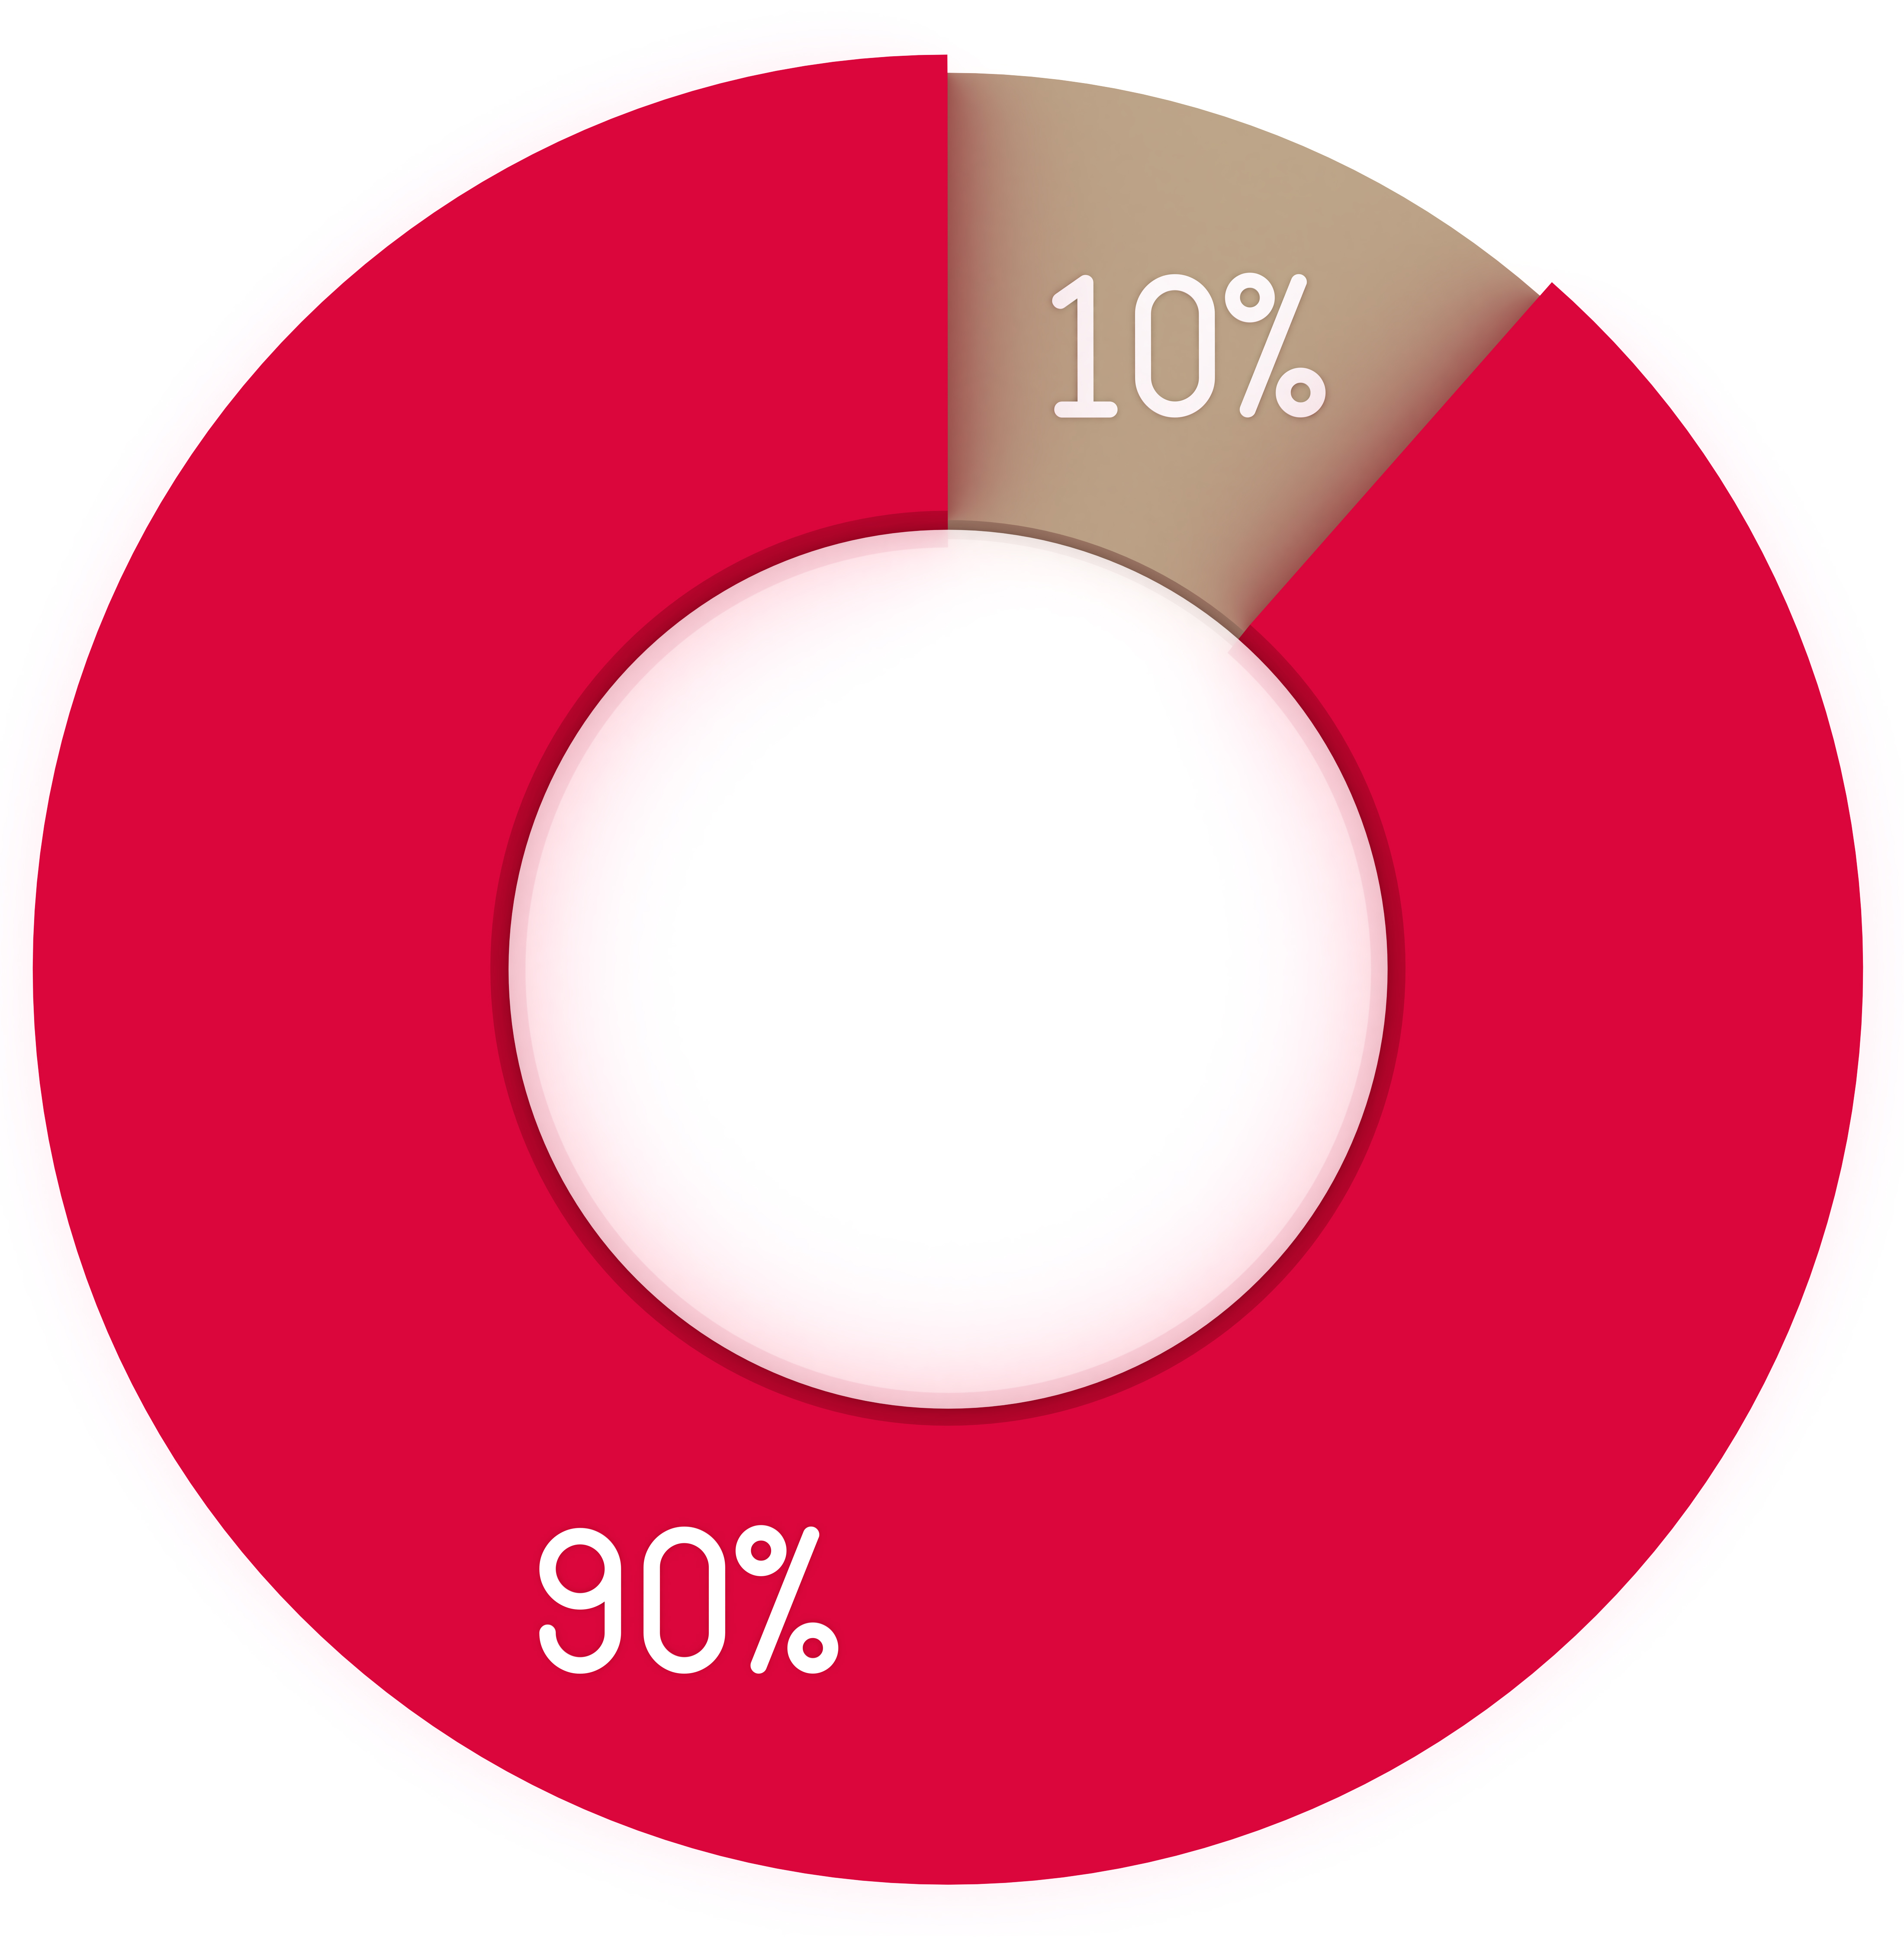 10 90 percent red and beige pie charts isolated. Percentage infographic symbol. 3d render circle 10% 90% diagram sign. Business icon illustration